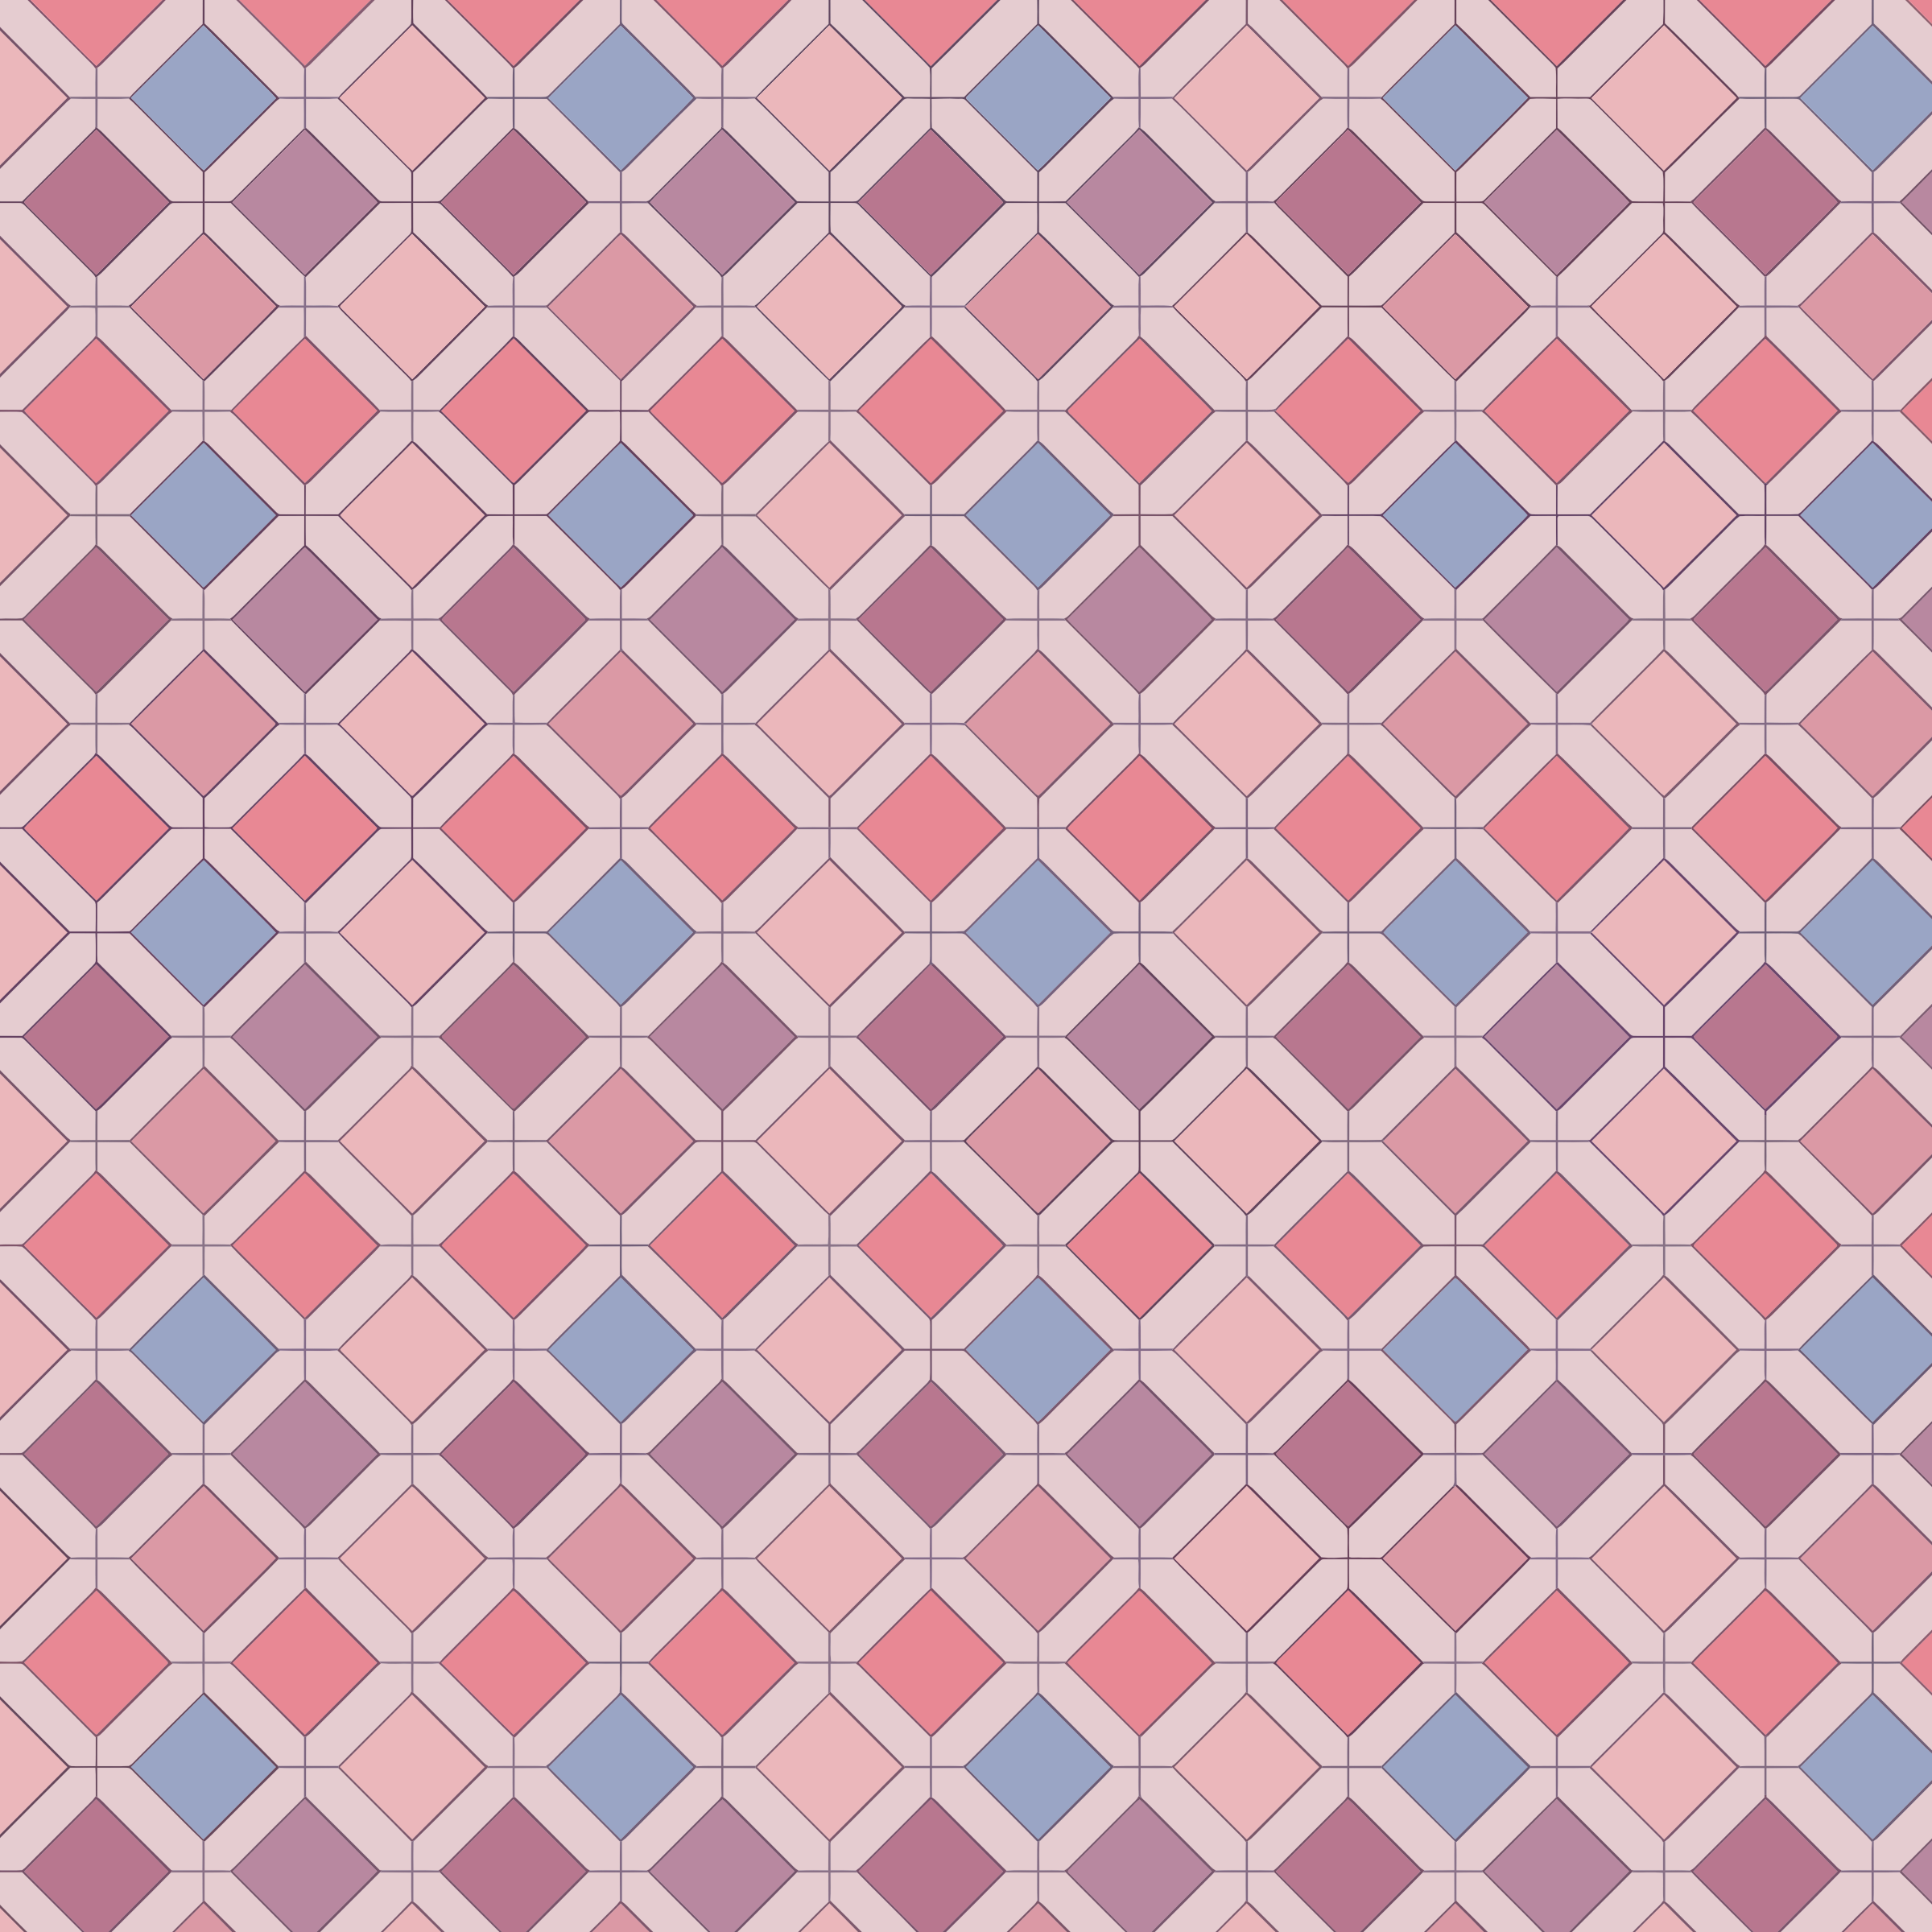 Abstract Pink Geometric Background by GDJ